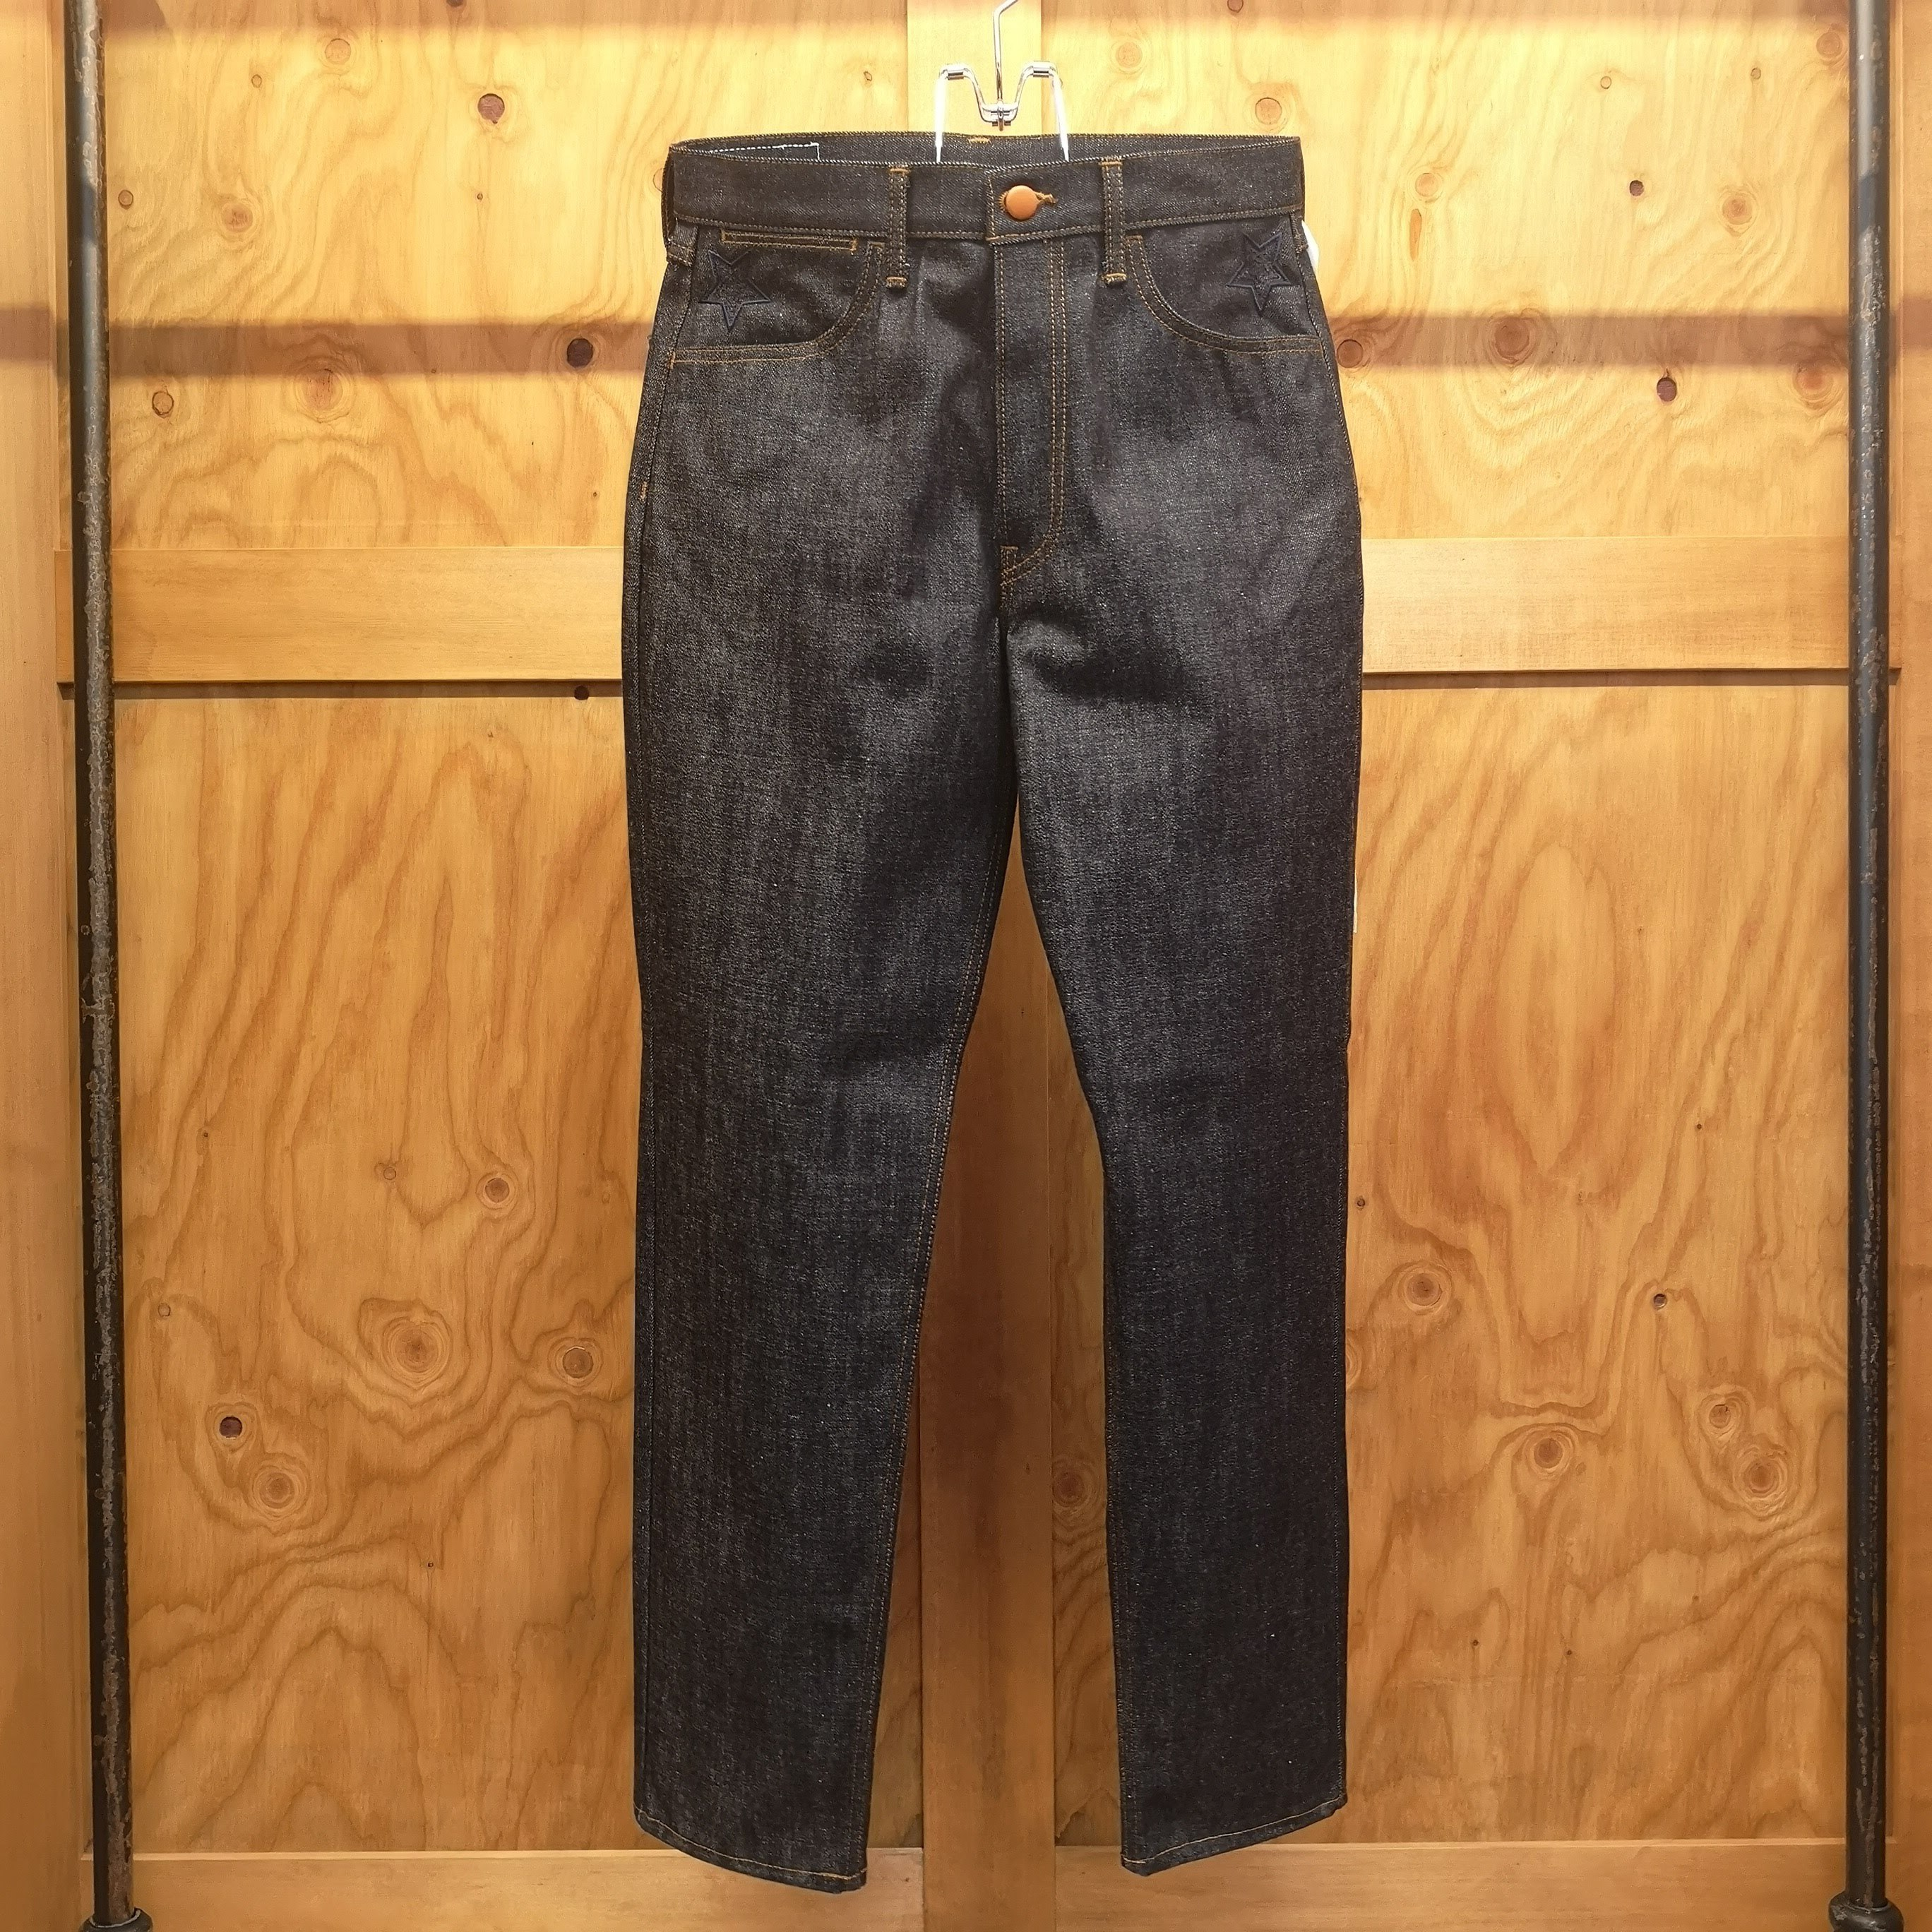 sd.0004AW18 : lone star new loose fit jean.